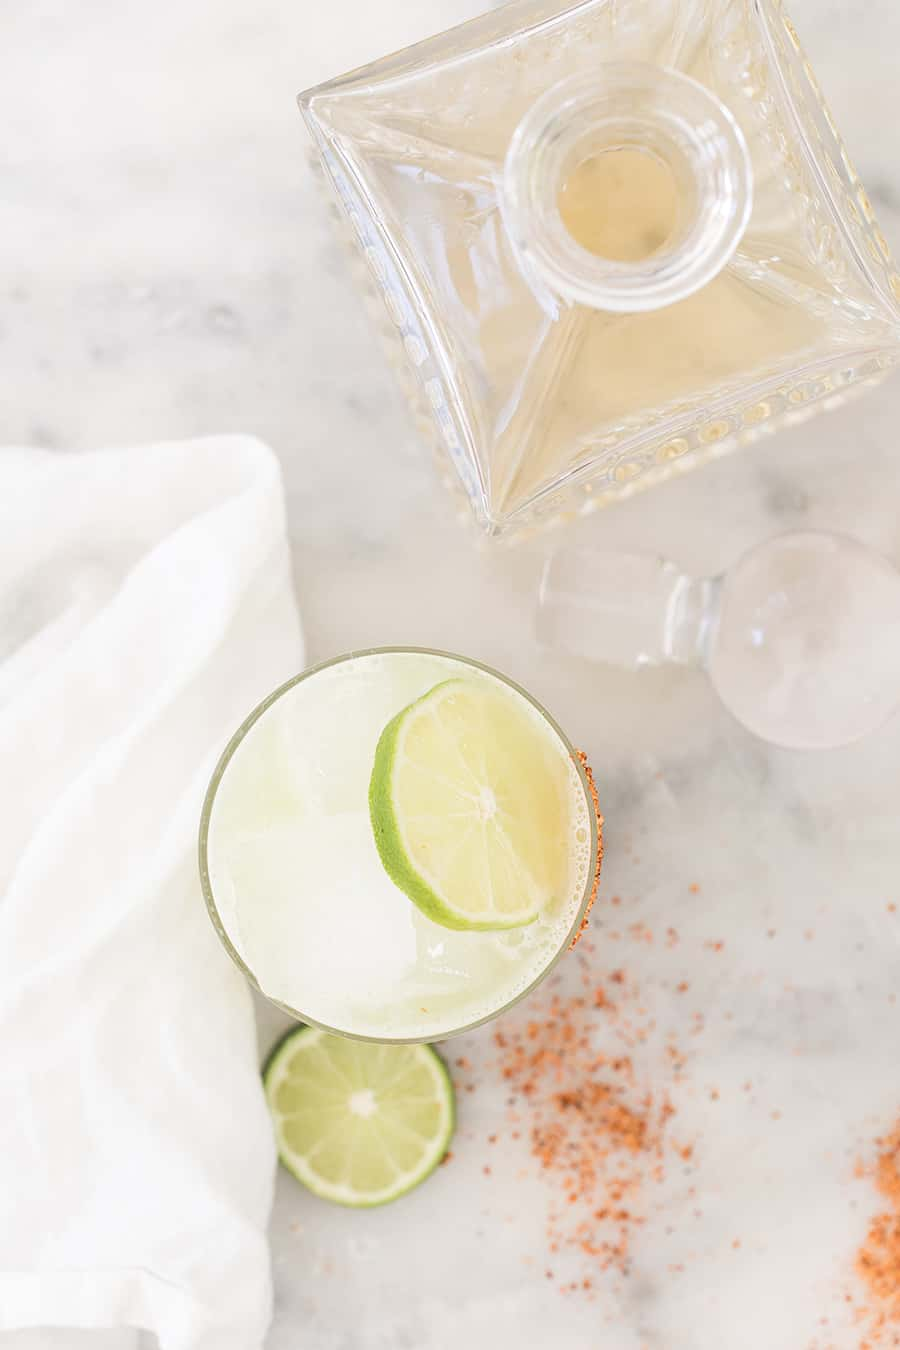 Cocktail with lime wedge and a bottle of tequila.